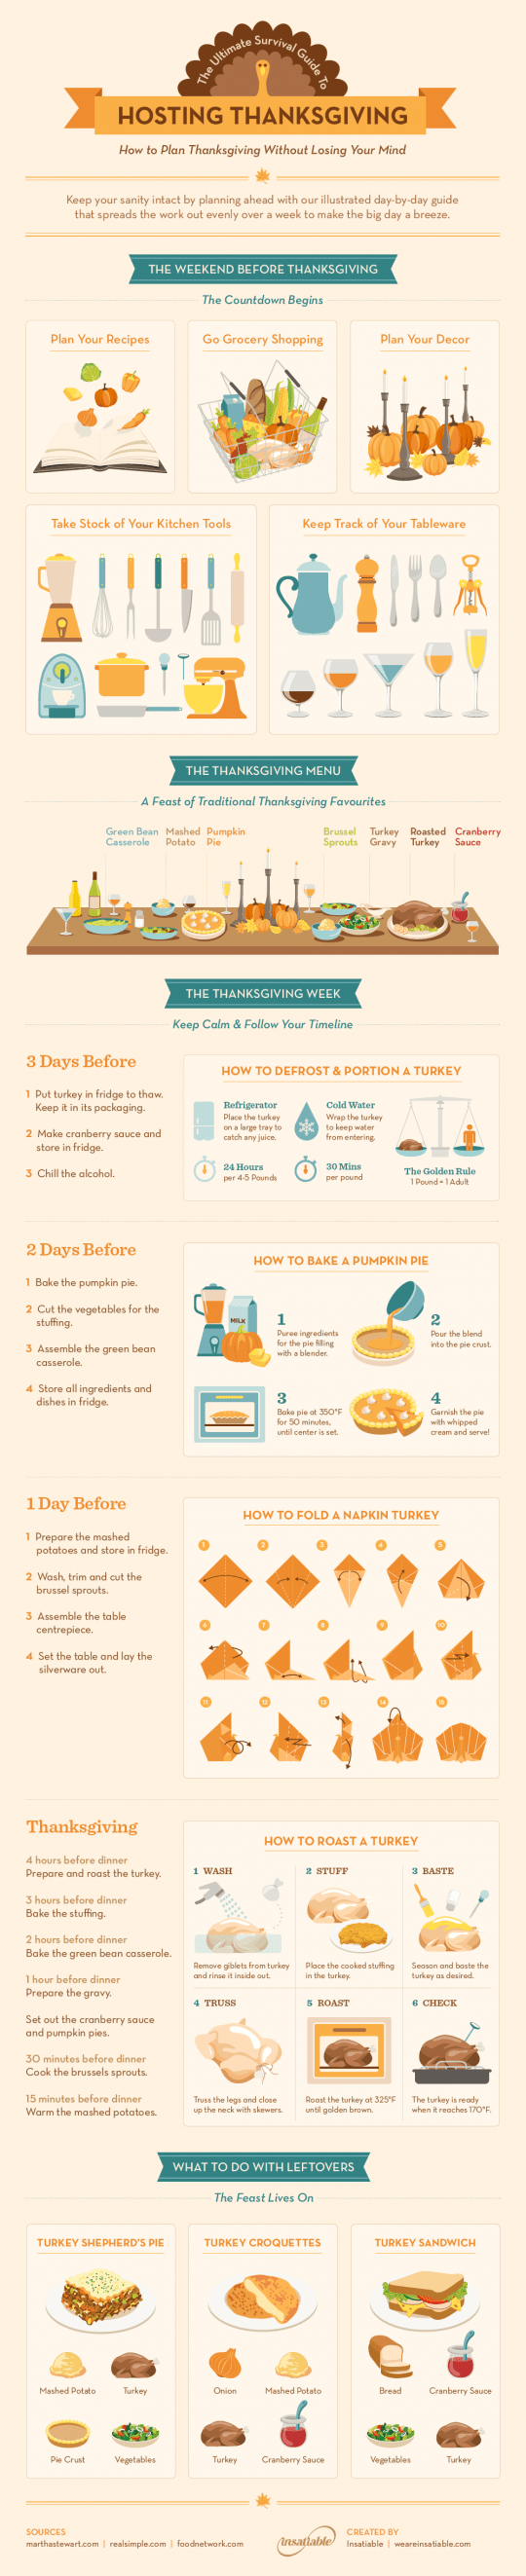 The Ultimate Survival Guide to Hosting Thanksgiving